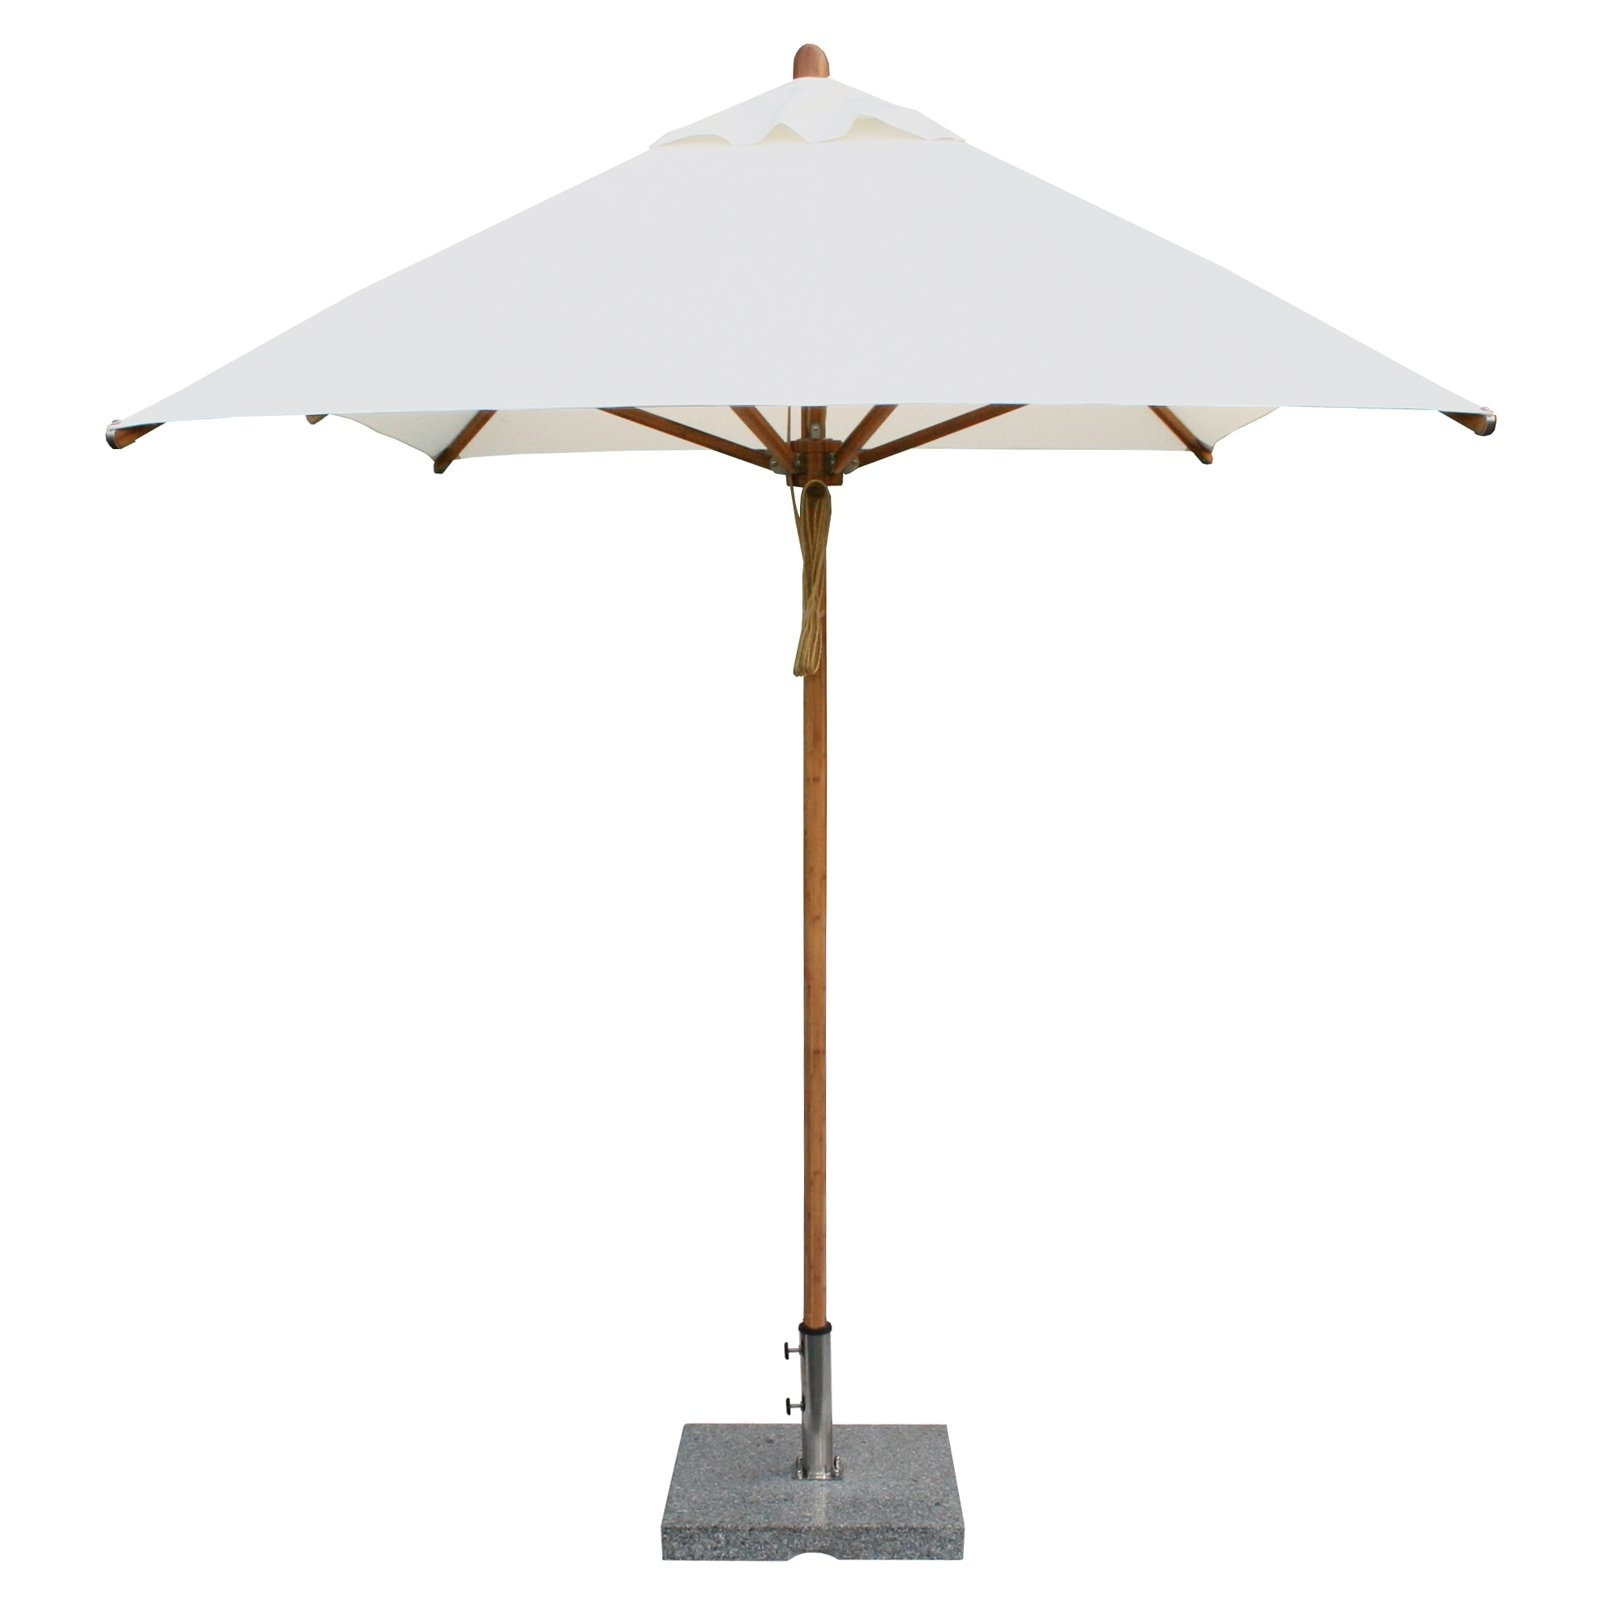 Outdoor: Cantilever Umbrella Plus Cantilever Umbrella Eclipse For With Regard To Fashionable Eclipse Patio Umbrellas (View 14 of 20)